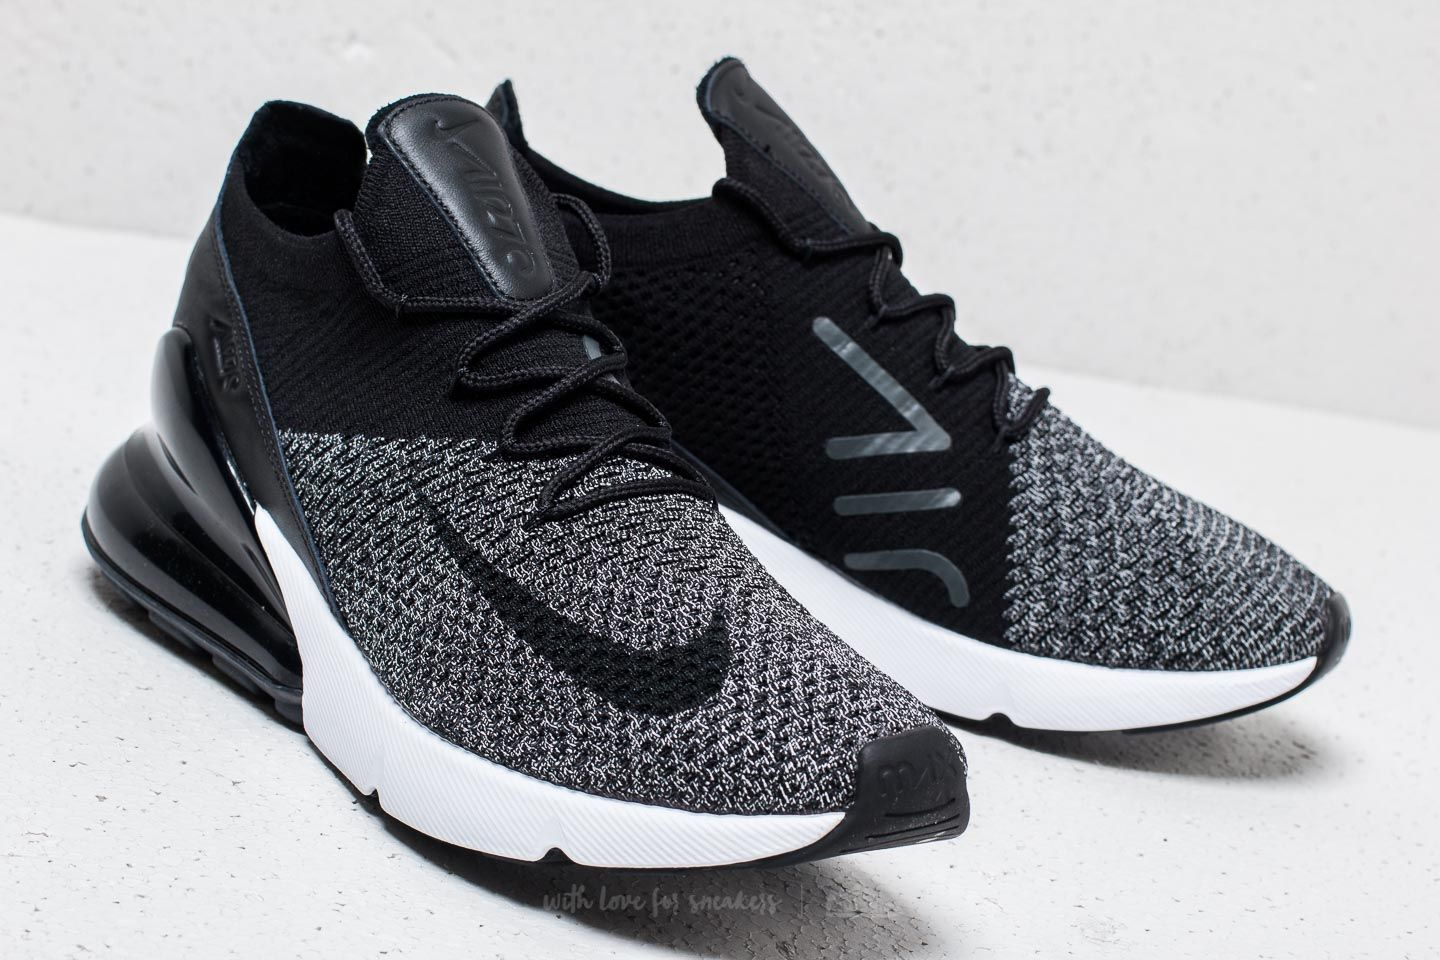 newest collection 68e3f 456b2 Nike Air Max 270 Flyknit Black/ Black-White | Footshop ...